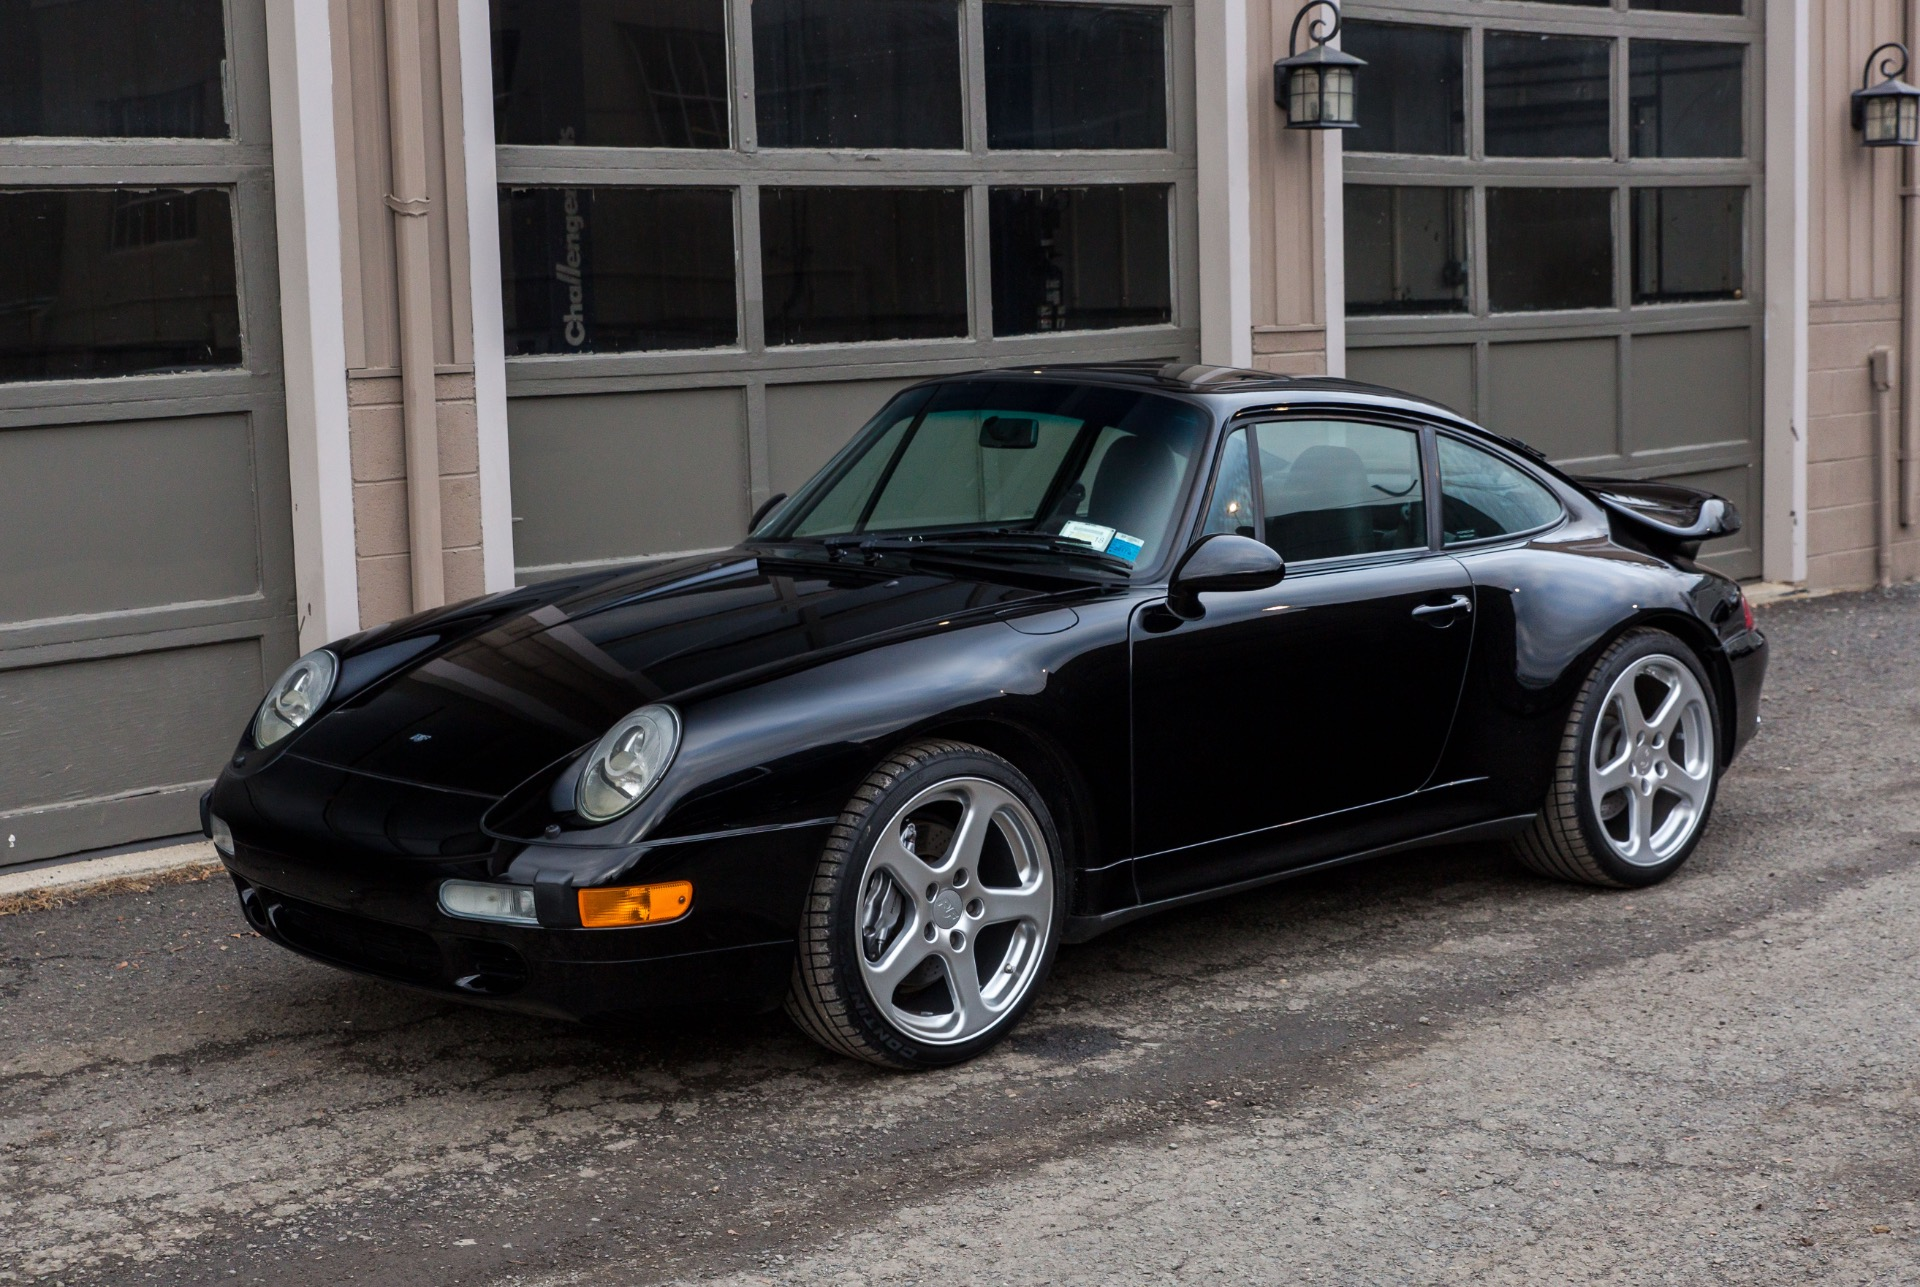 1997 Porsche 911 Ruf Turbo